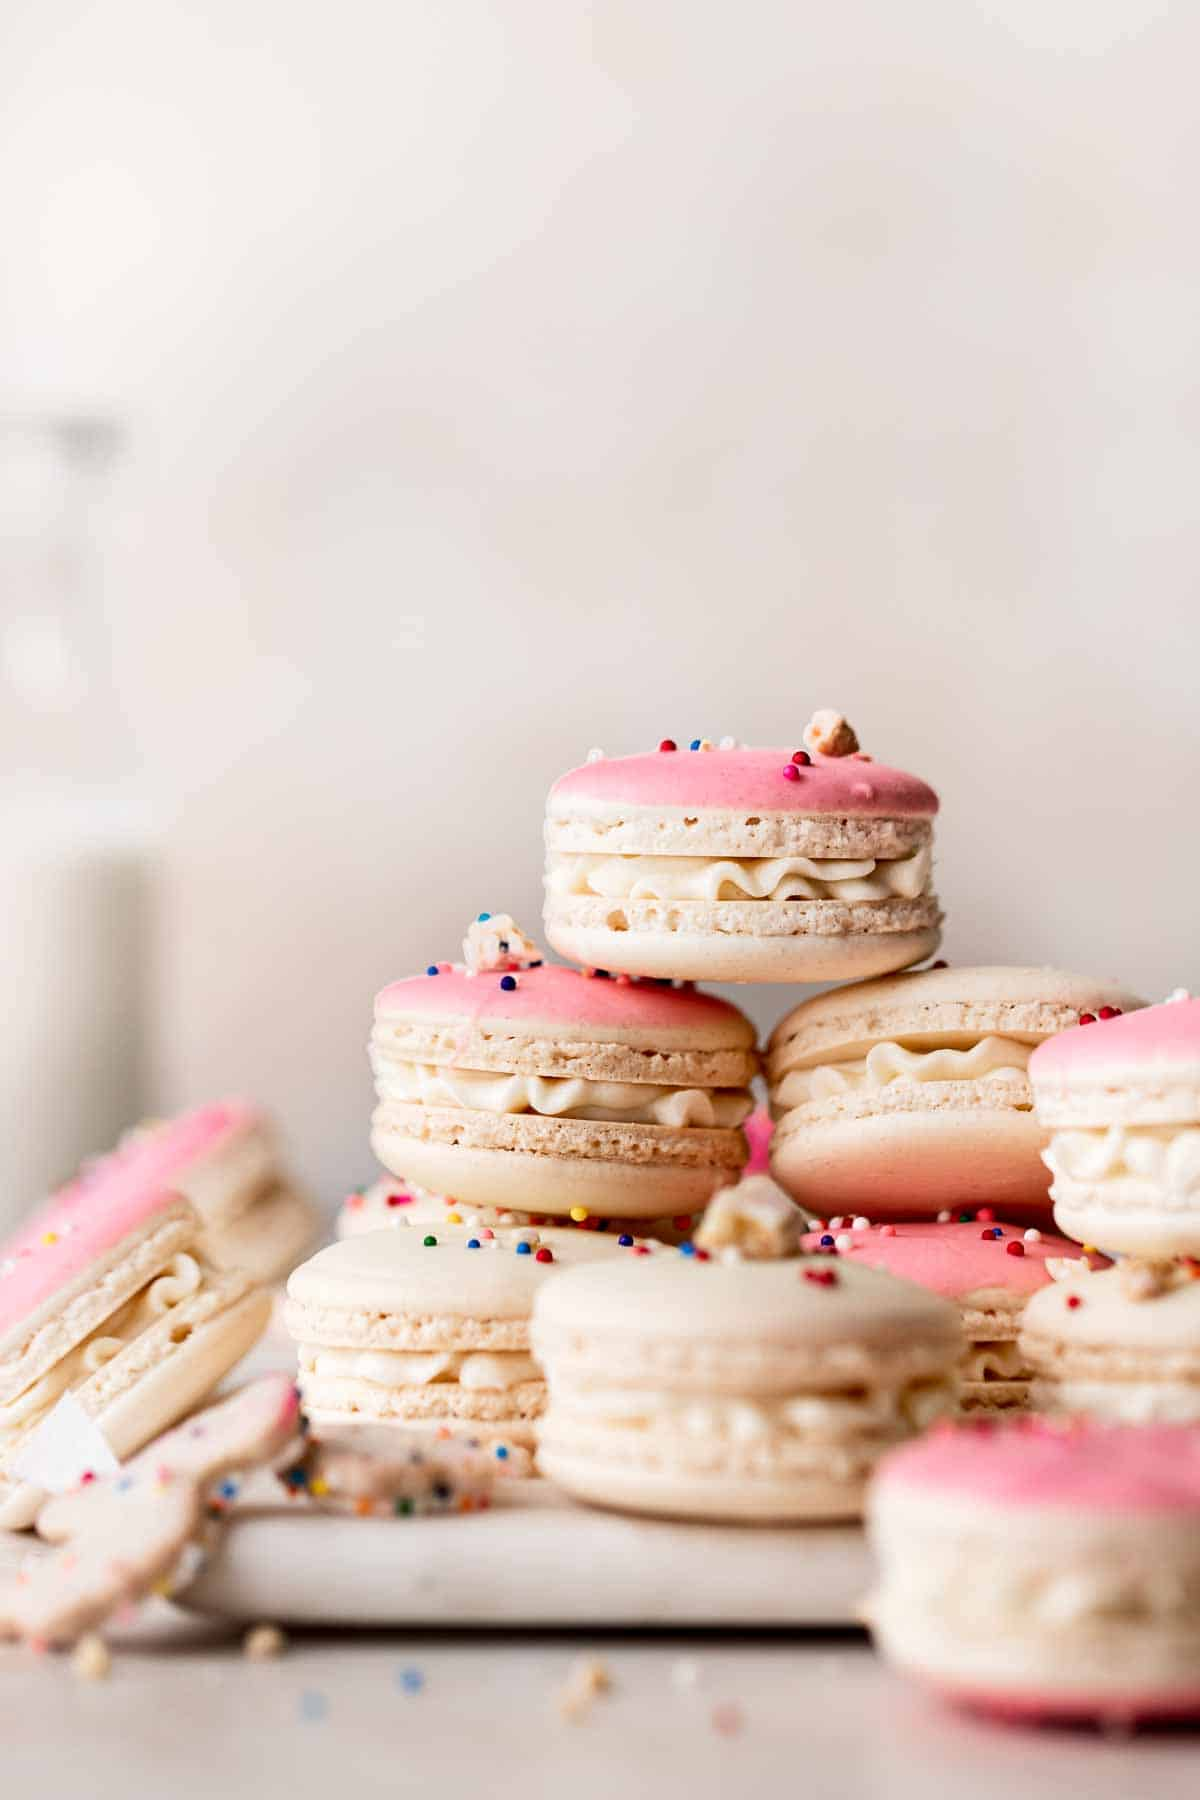 birthday cake macarons stacked on each other.